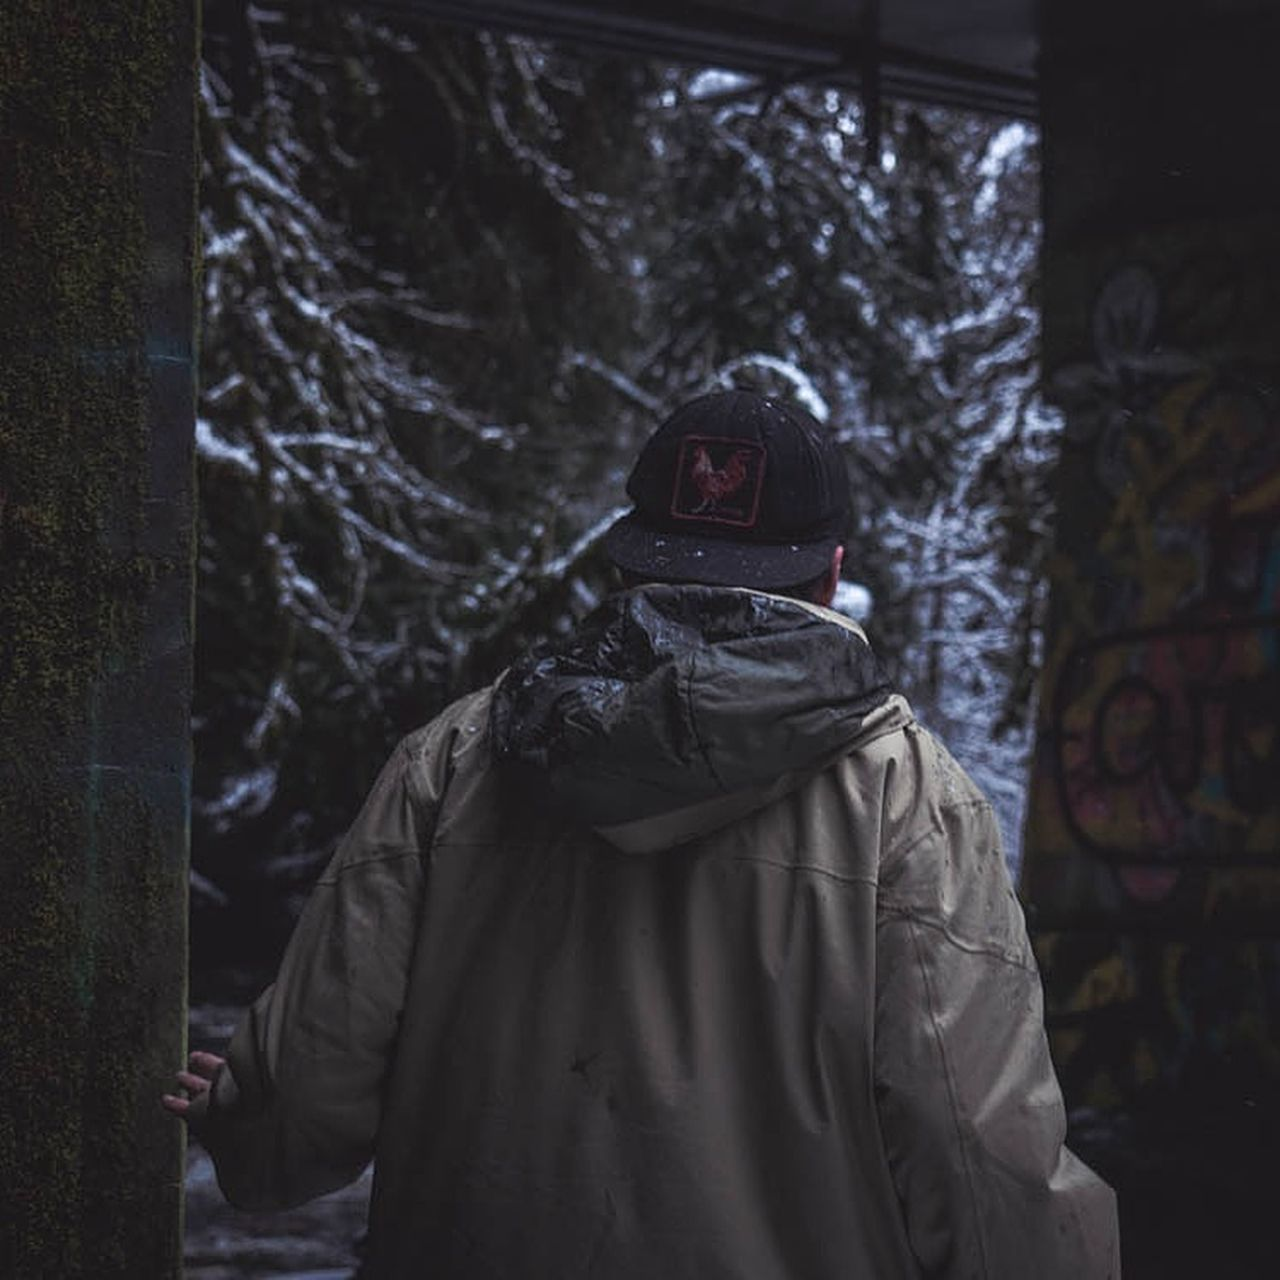 spooky, hood - clothing, real people, night, tree, one person, outdoors, evil, halloween, people